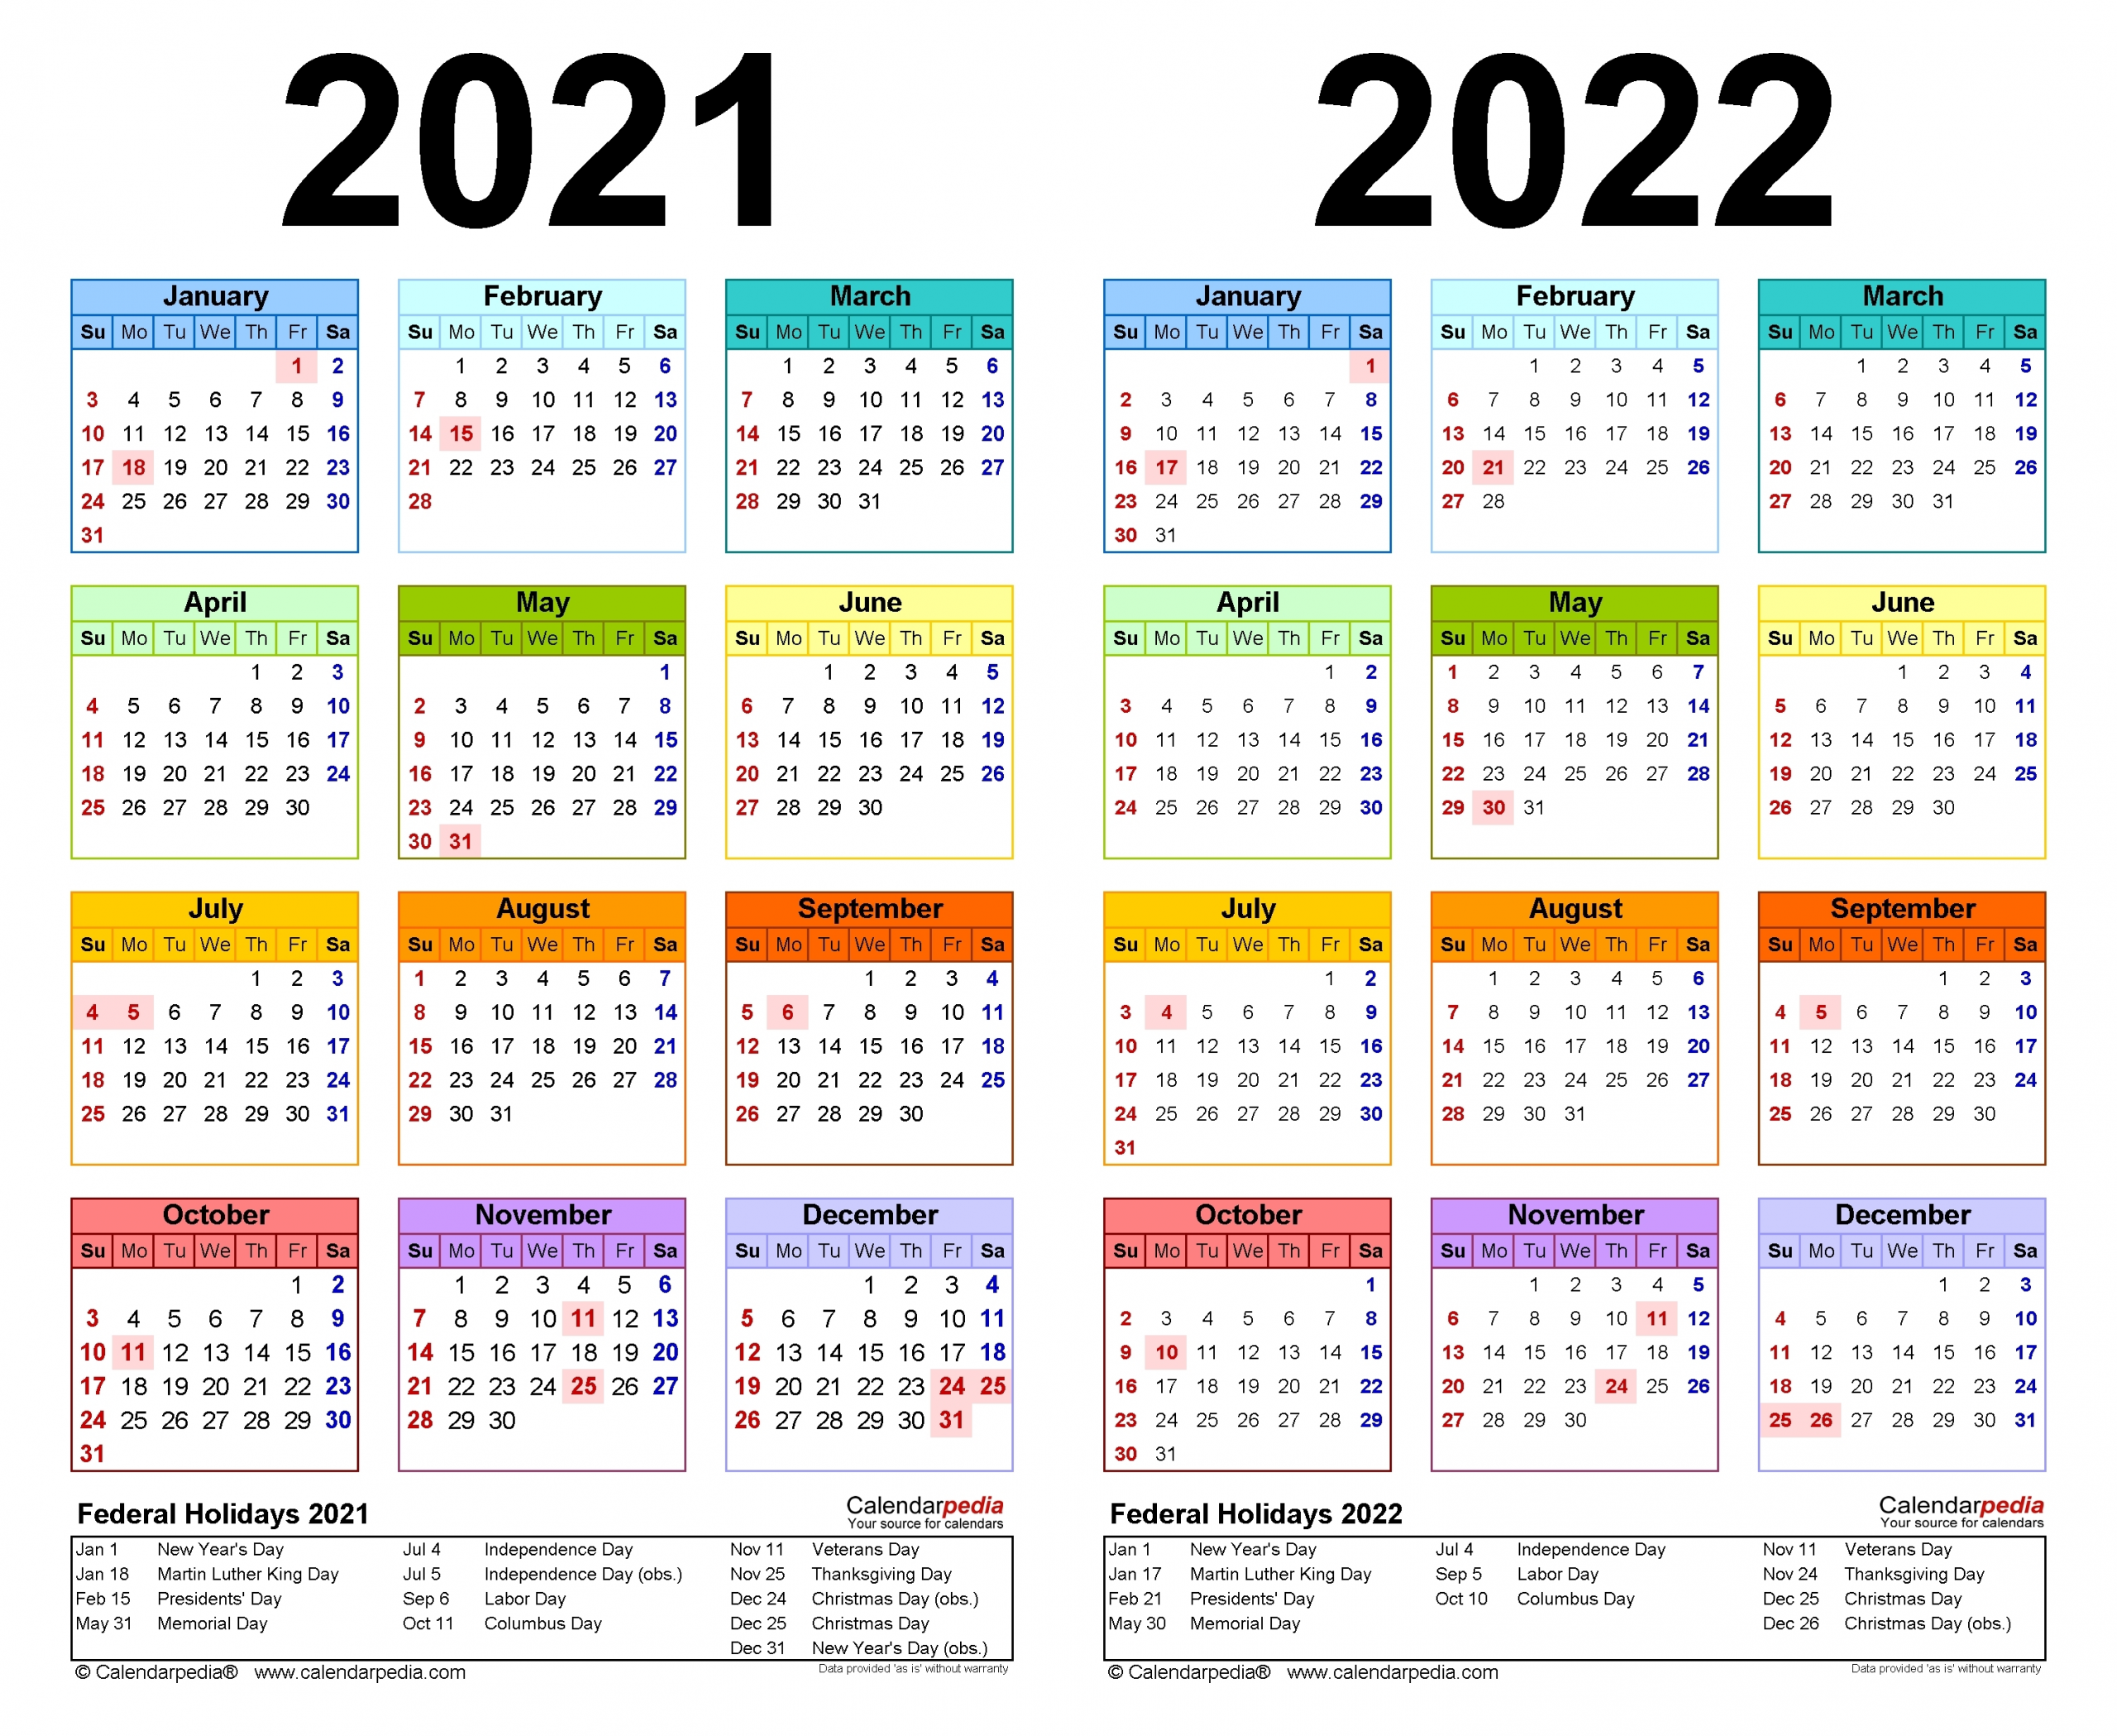 Small Yearly Calendars For 2021 And 2022 - Calendar Inspiration Design throughout 3 Year Printable Calendar 2021 2021 2022